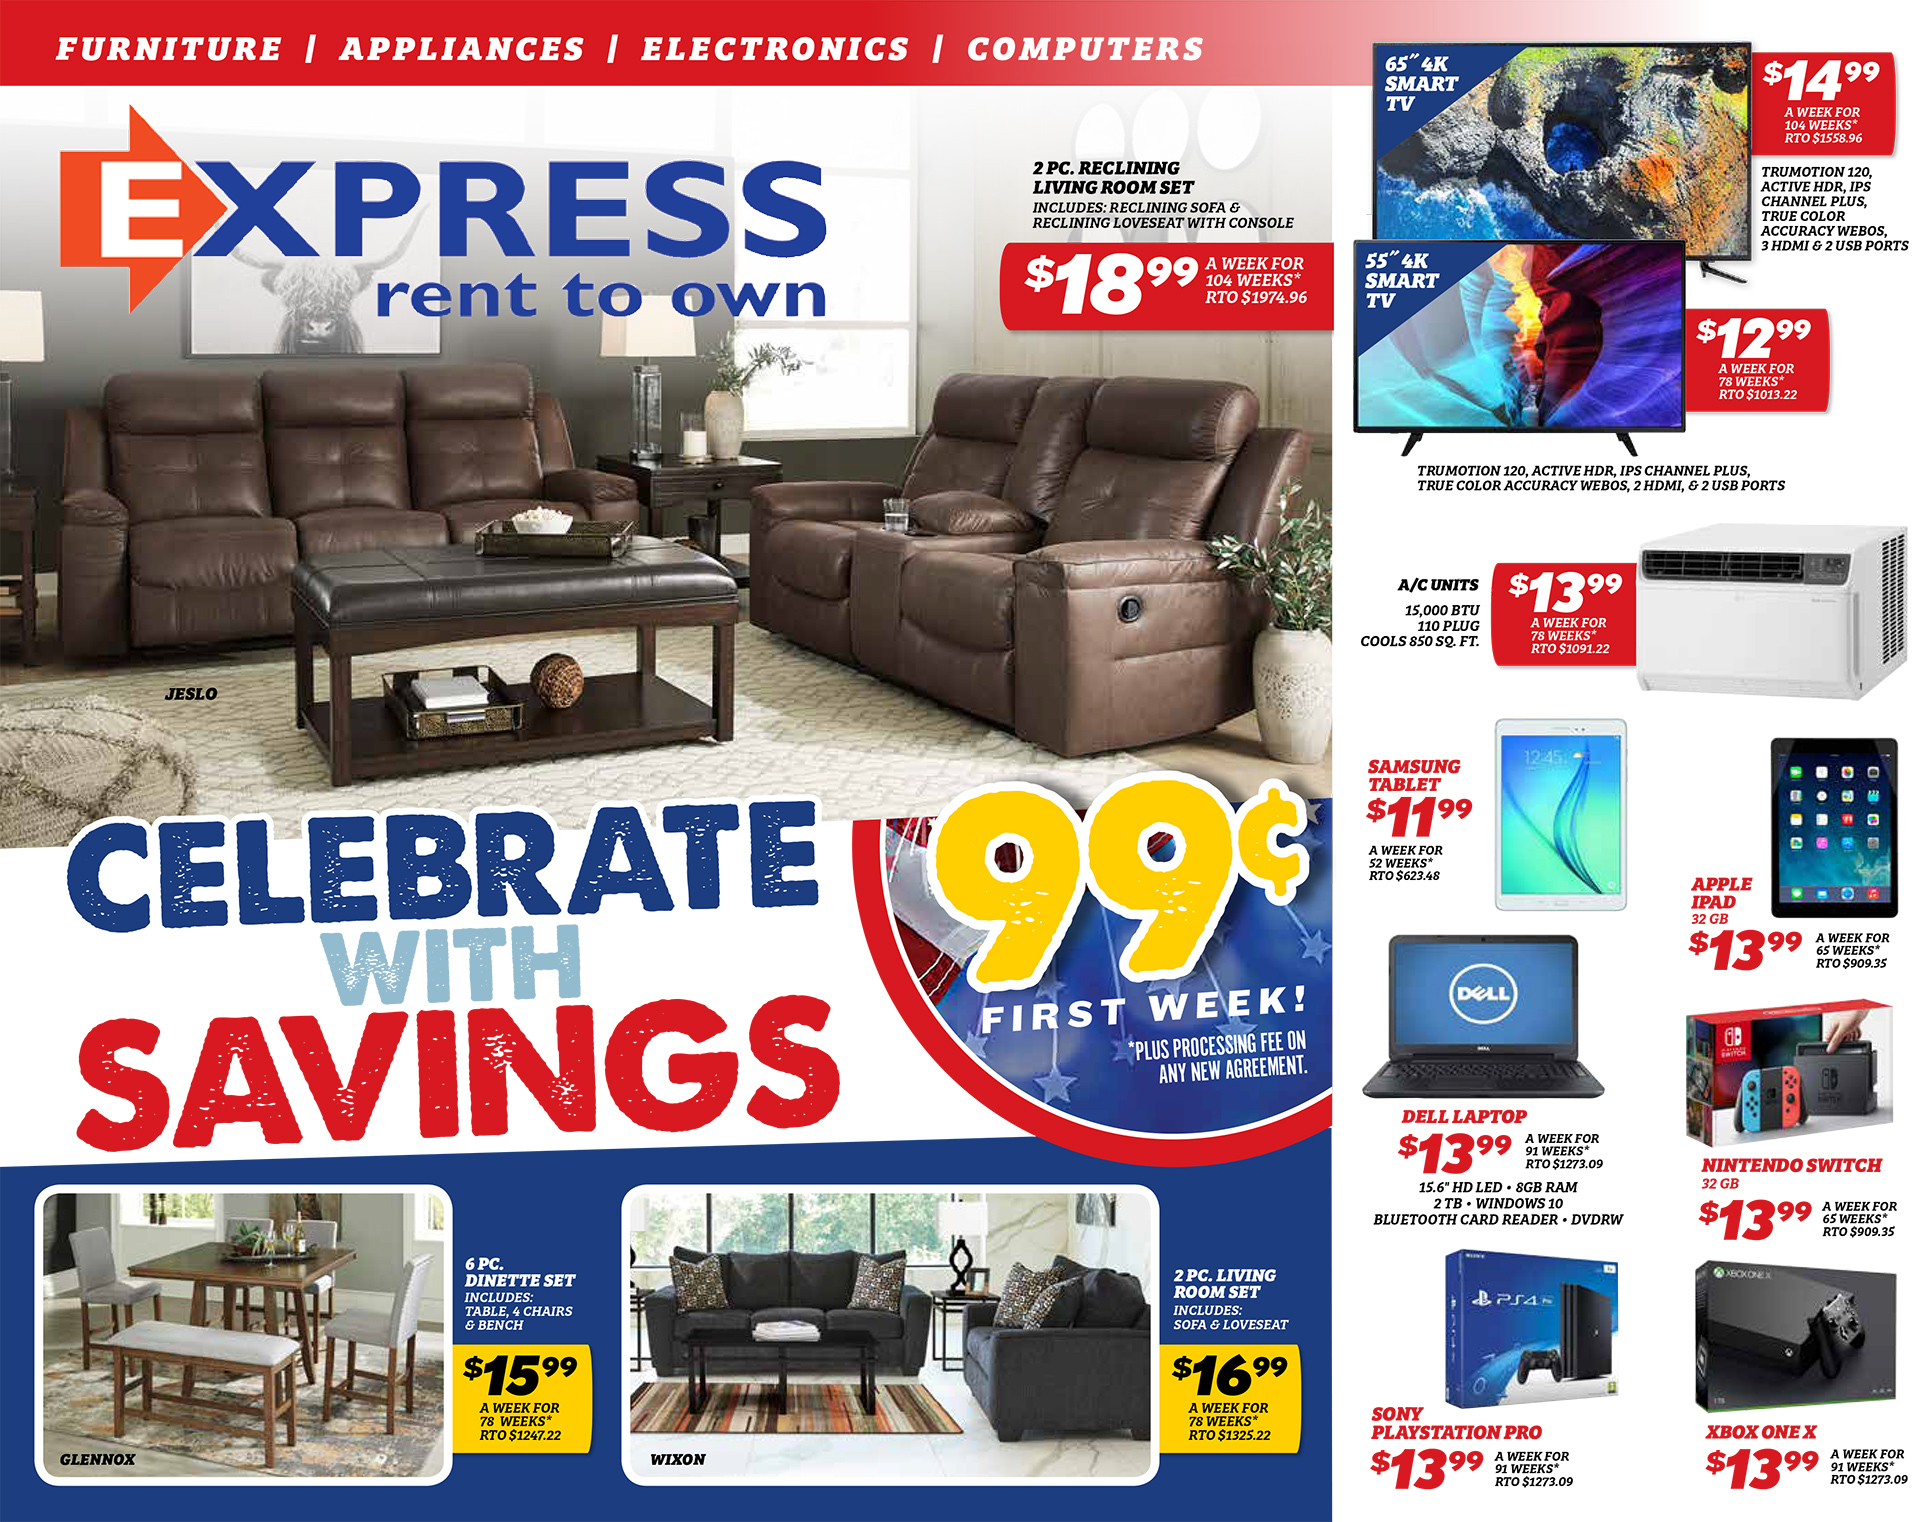 Express Rent To Own Affordable Furniture